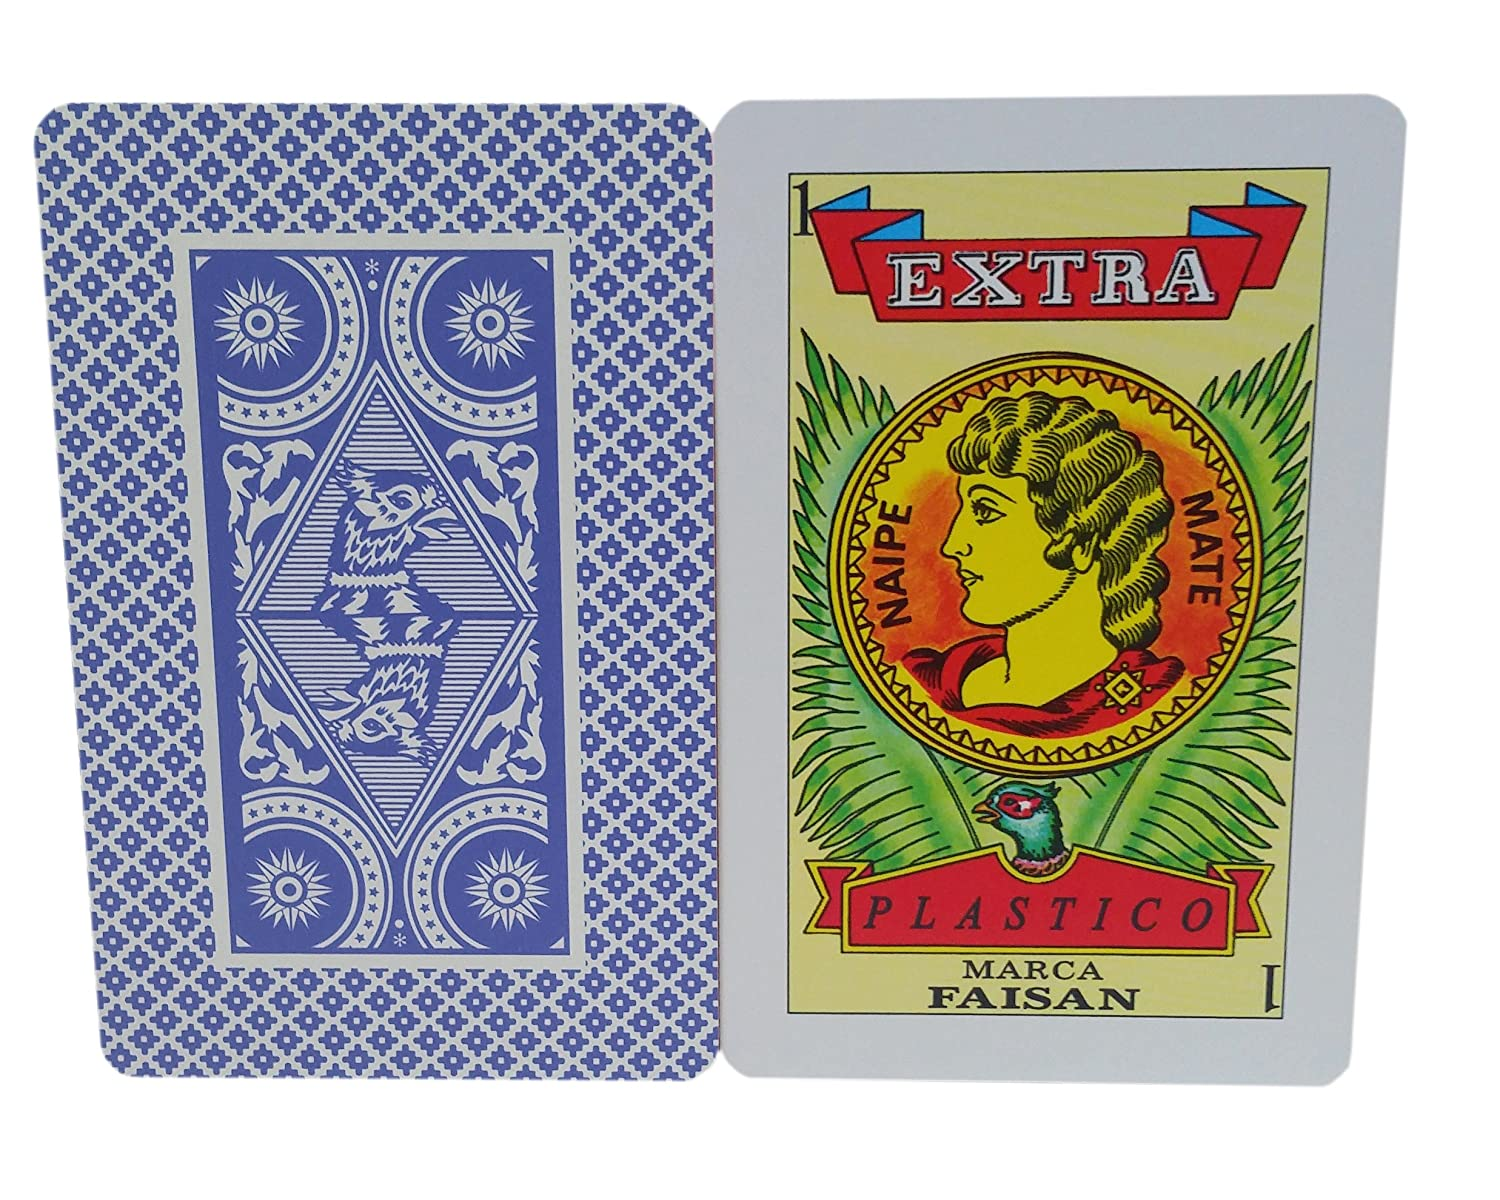 Color Azul Clemente Jaques Mexican Playing Cards Naipe Spanish Style Faisan Extra Blue Color